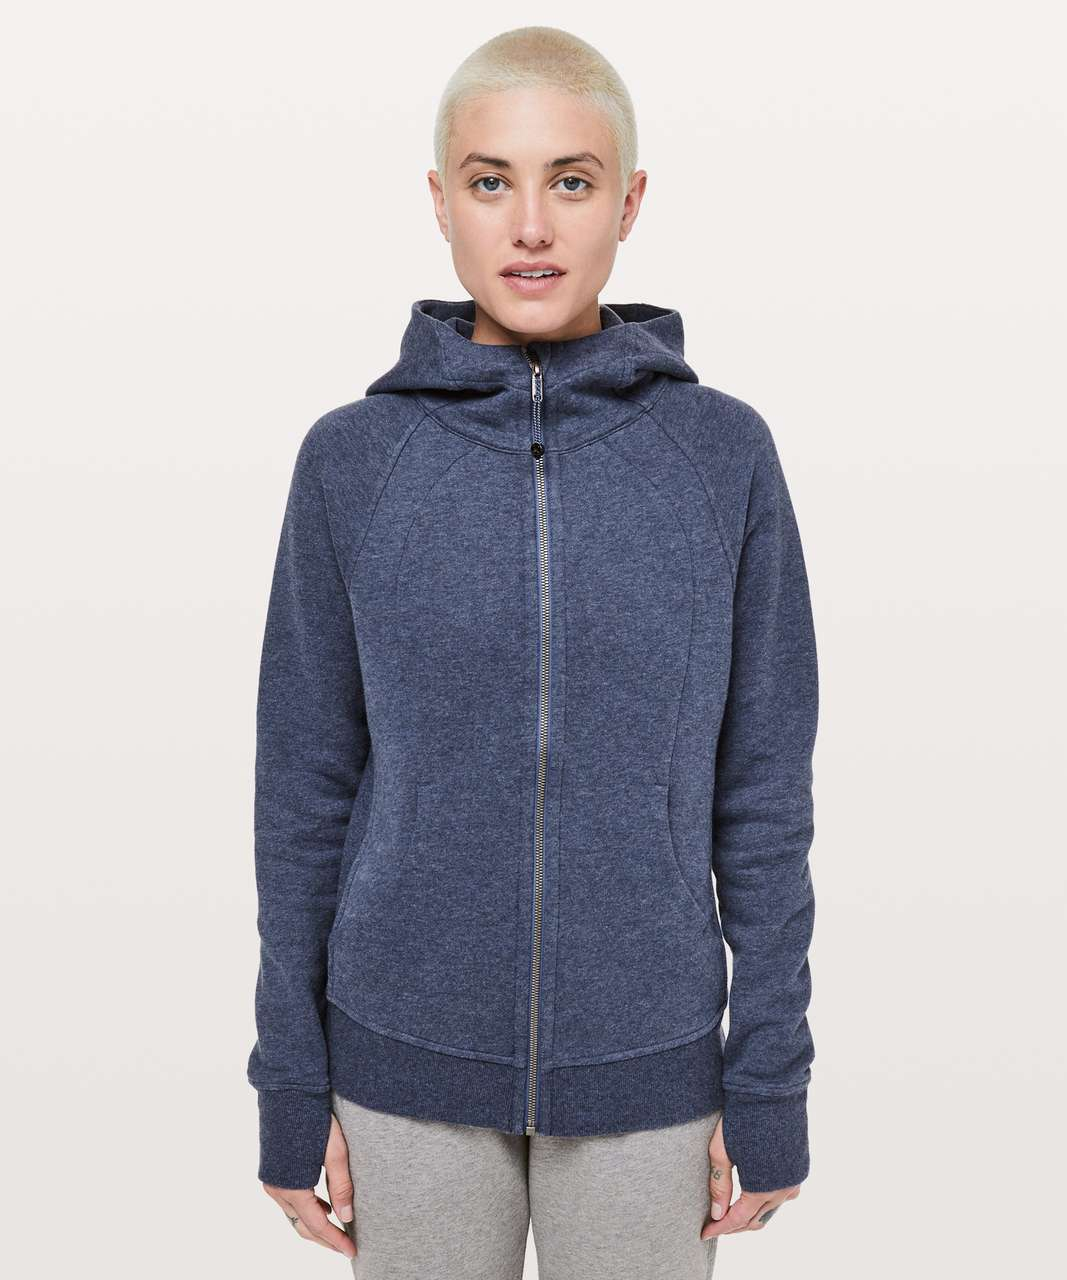 Lululemon Scuba Hoodie *Light Cotton Fleece - Heathered Gatsby Blue